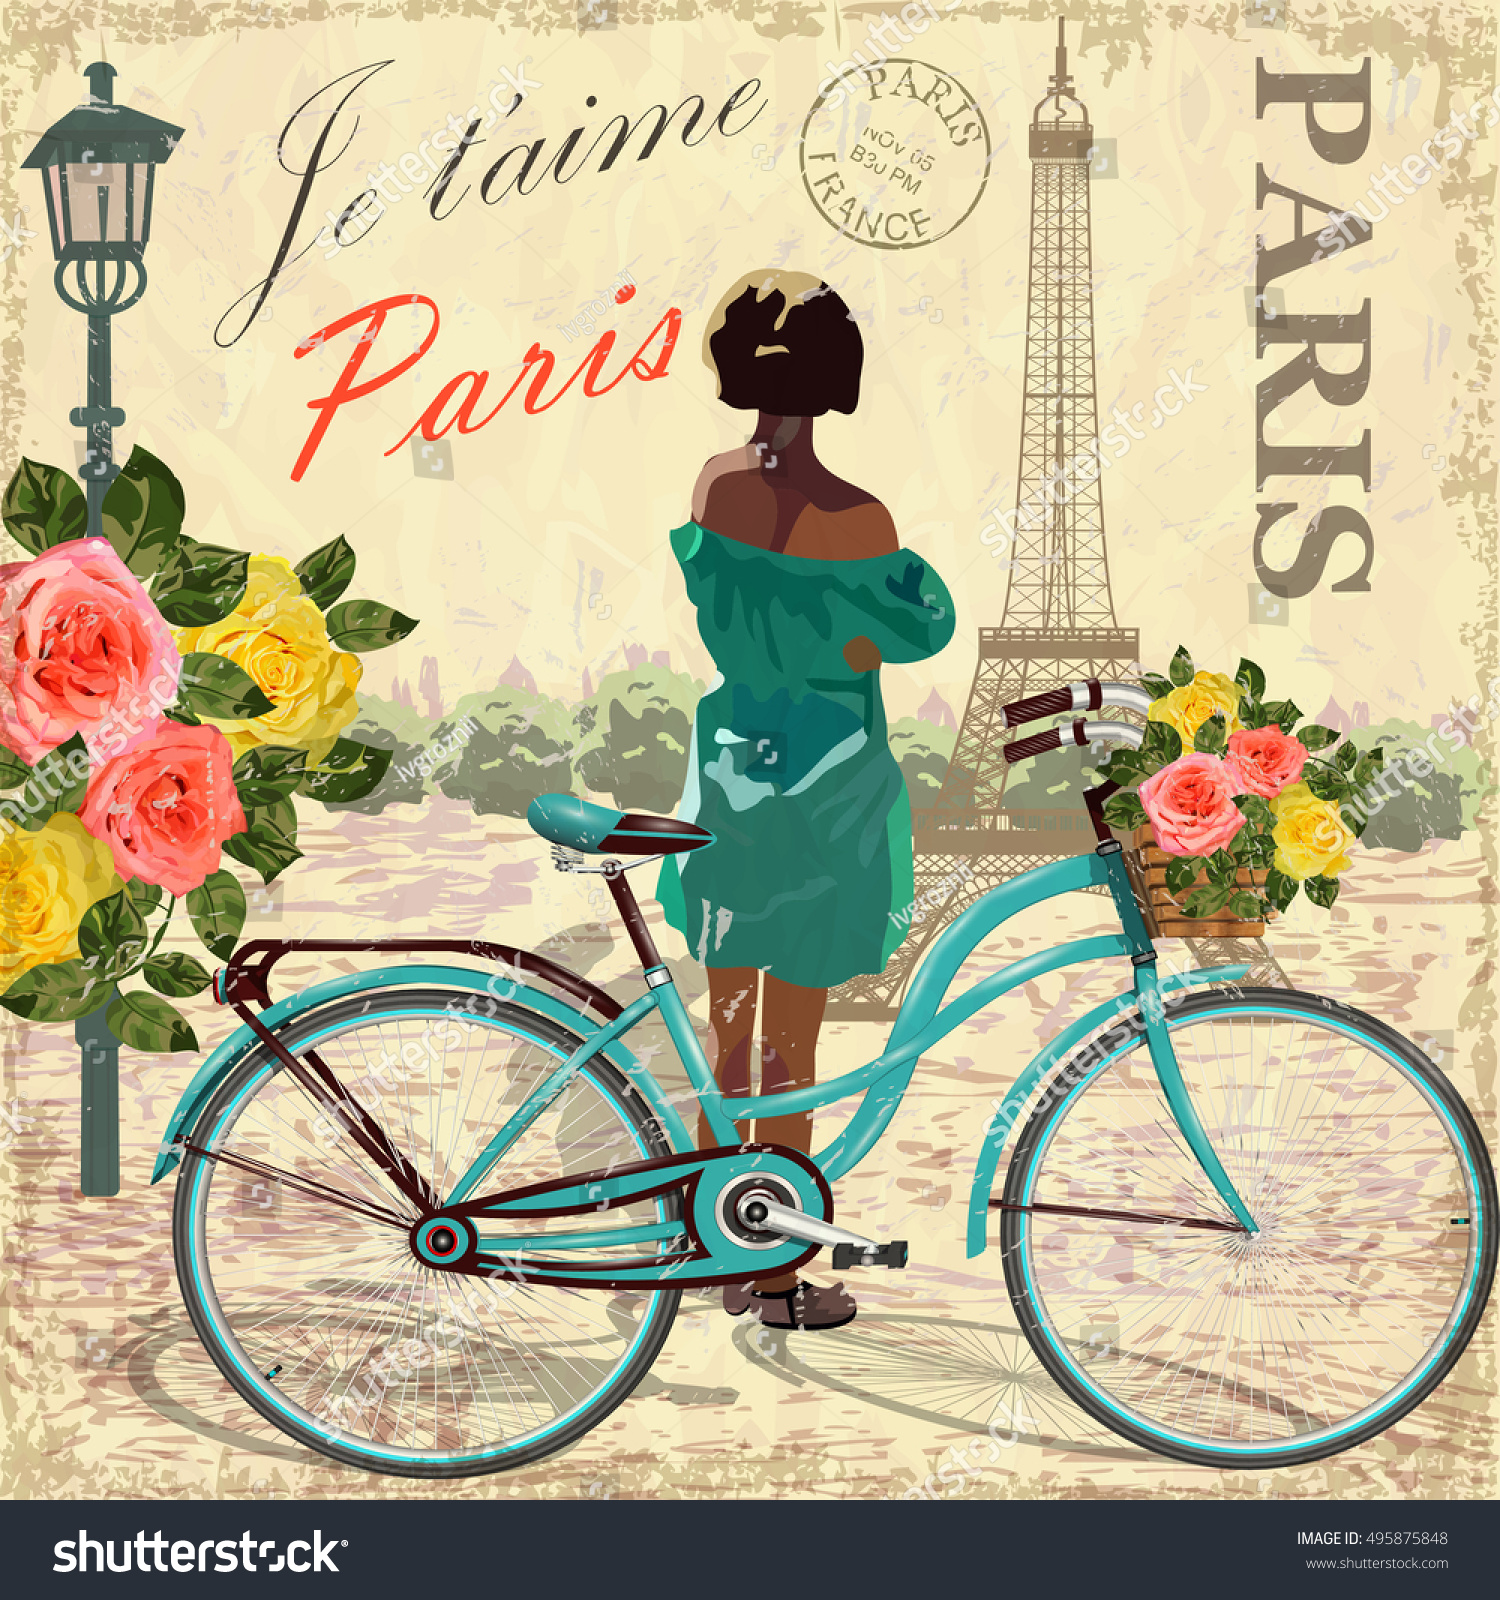 paris vintage poster stock vector 495875848 shutterstock. Black Bedroom Furniture Sets. Home Design Ideas